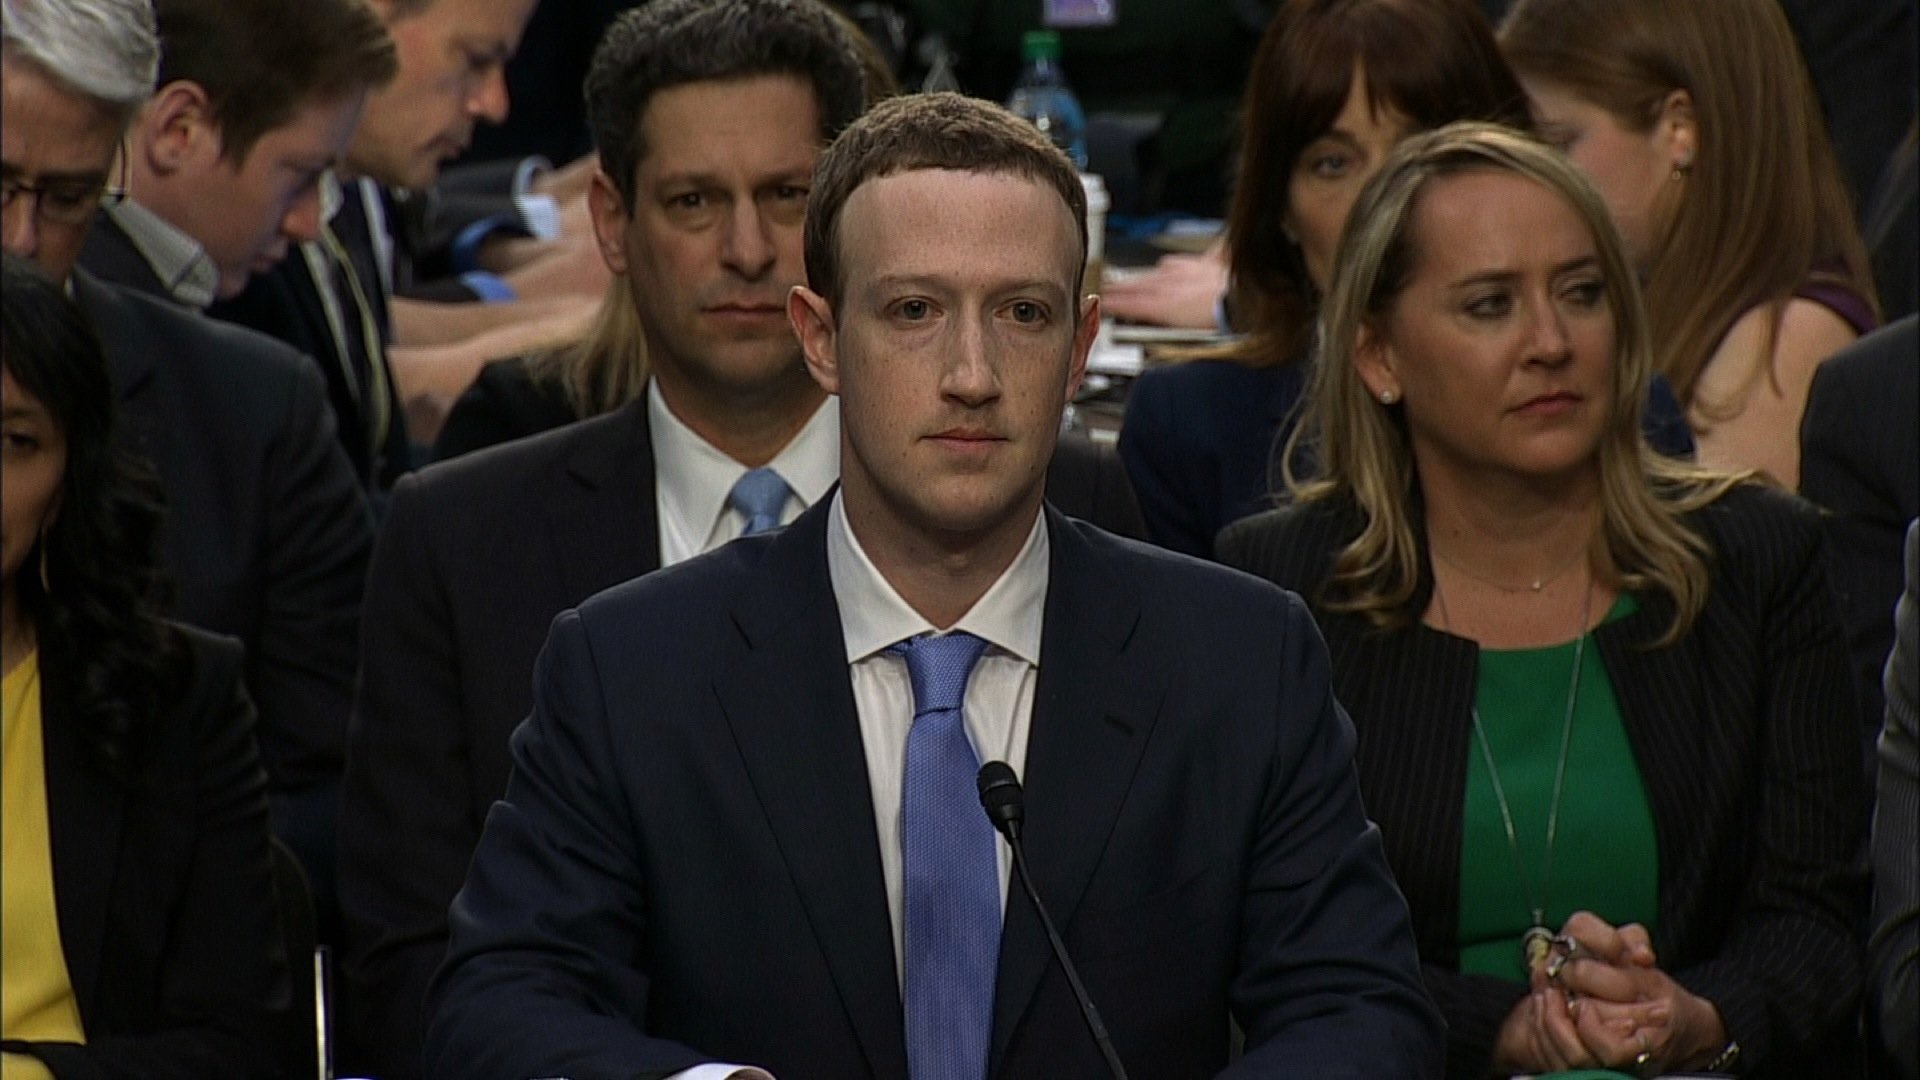 Mark Zuckerberg has agreed to appear before the European Parliament to discuss Facebook's use of personal data. (FILE)